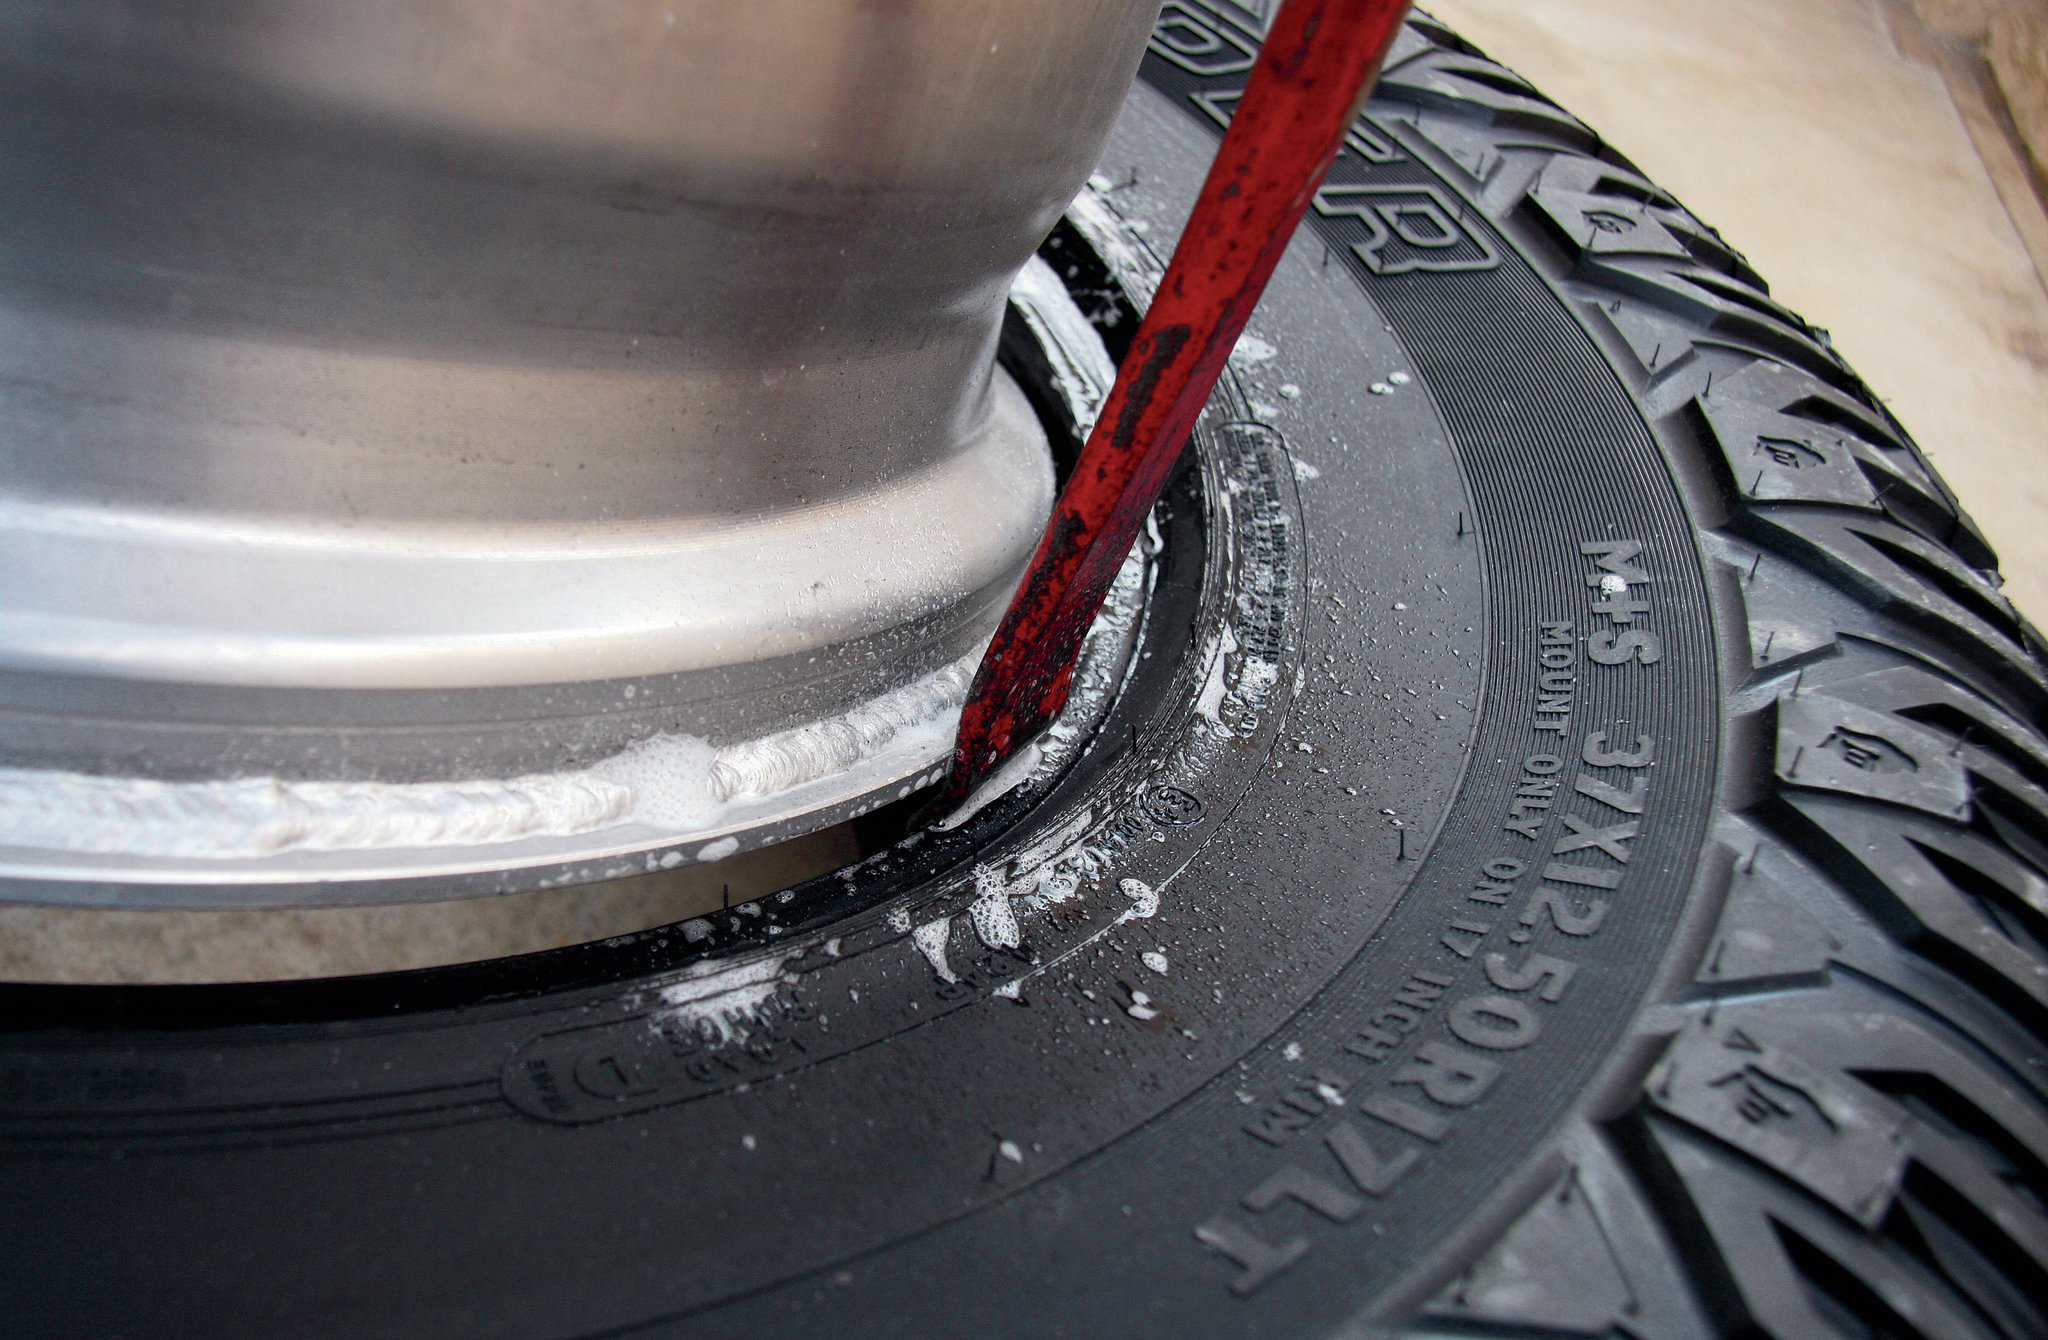 Many tire shops won't dare touch beadlock wheels due to liability fears of drivers using them on public roads. However, it's easy enough to mount tires at home. The front wheel face can easily be slipped inside a tire using a little soapy water and a pry bar. Once there, you simply flip the wheel and tire over, and prepare to bolt the outer ring onto the wheel. Airing up the freshly mounted tire is easy too, generally only requiring pulling the tire toward the rear wheel bead while adding air until the tire pops fully onto the rear bead.